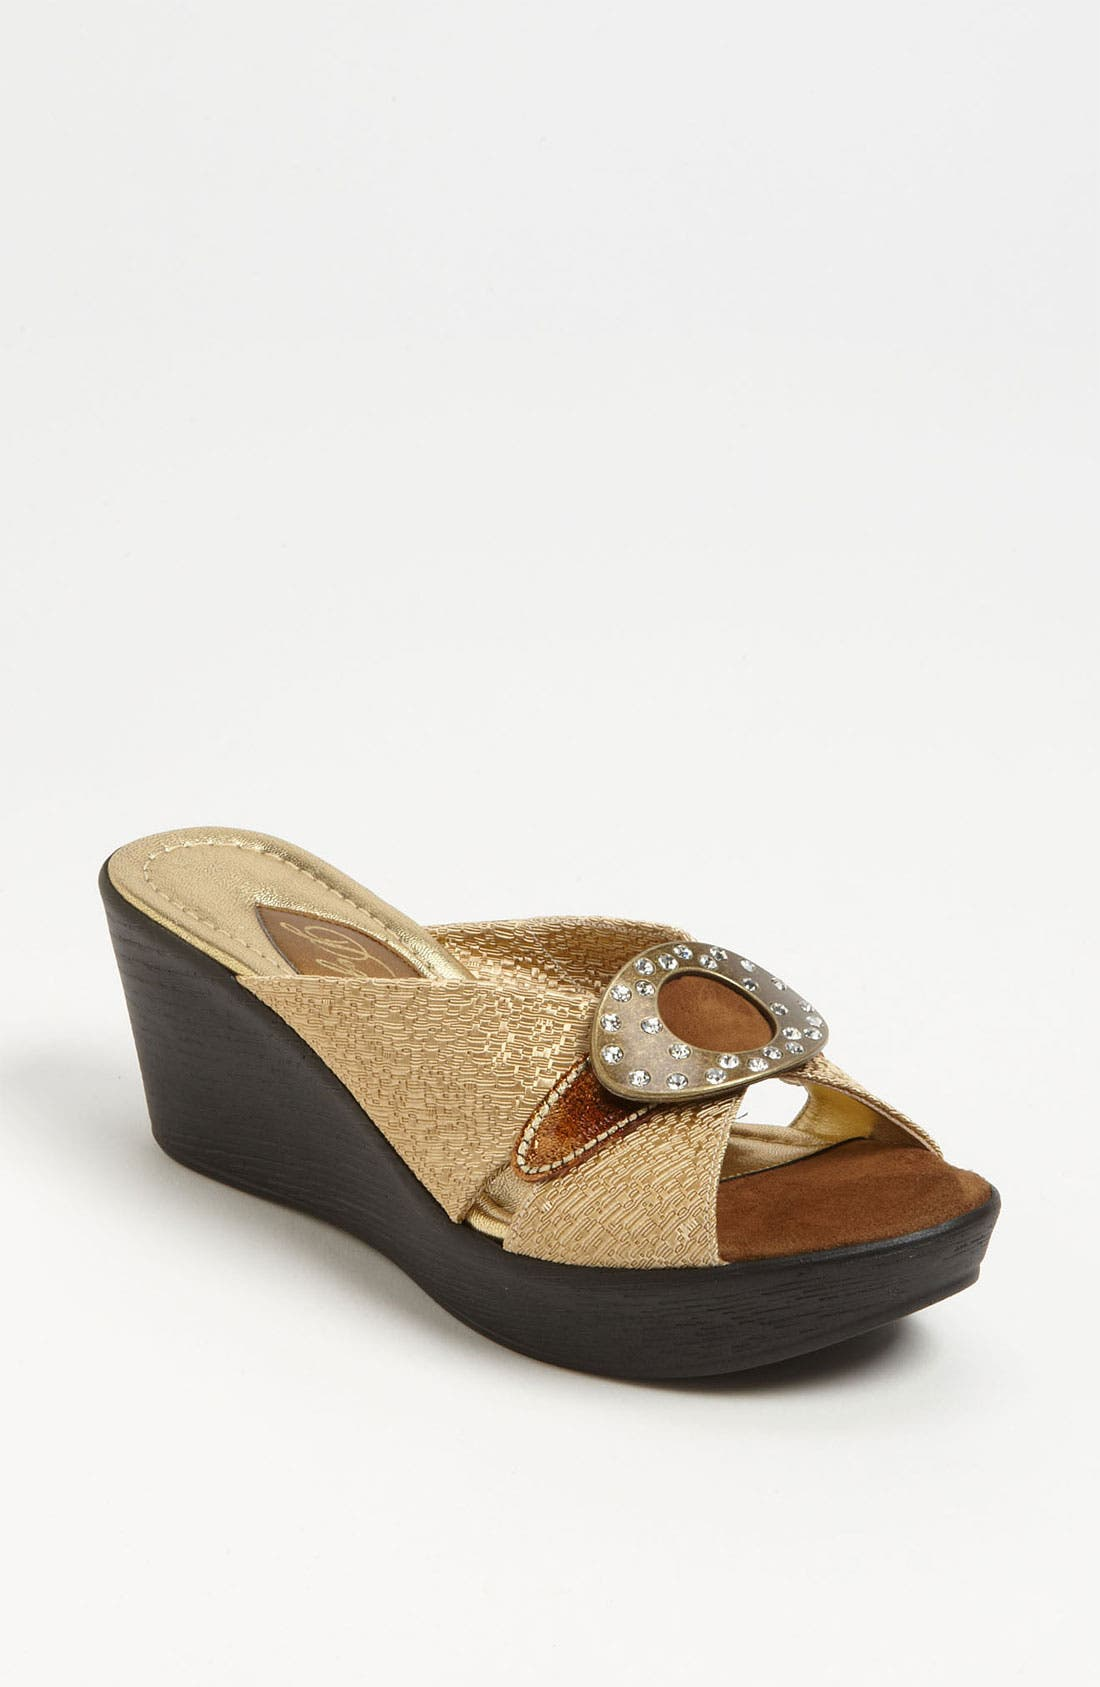 Alternate Image 1 Selected - Dezario 'Pepi' Sandal